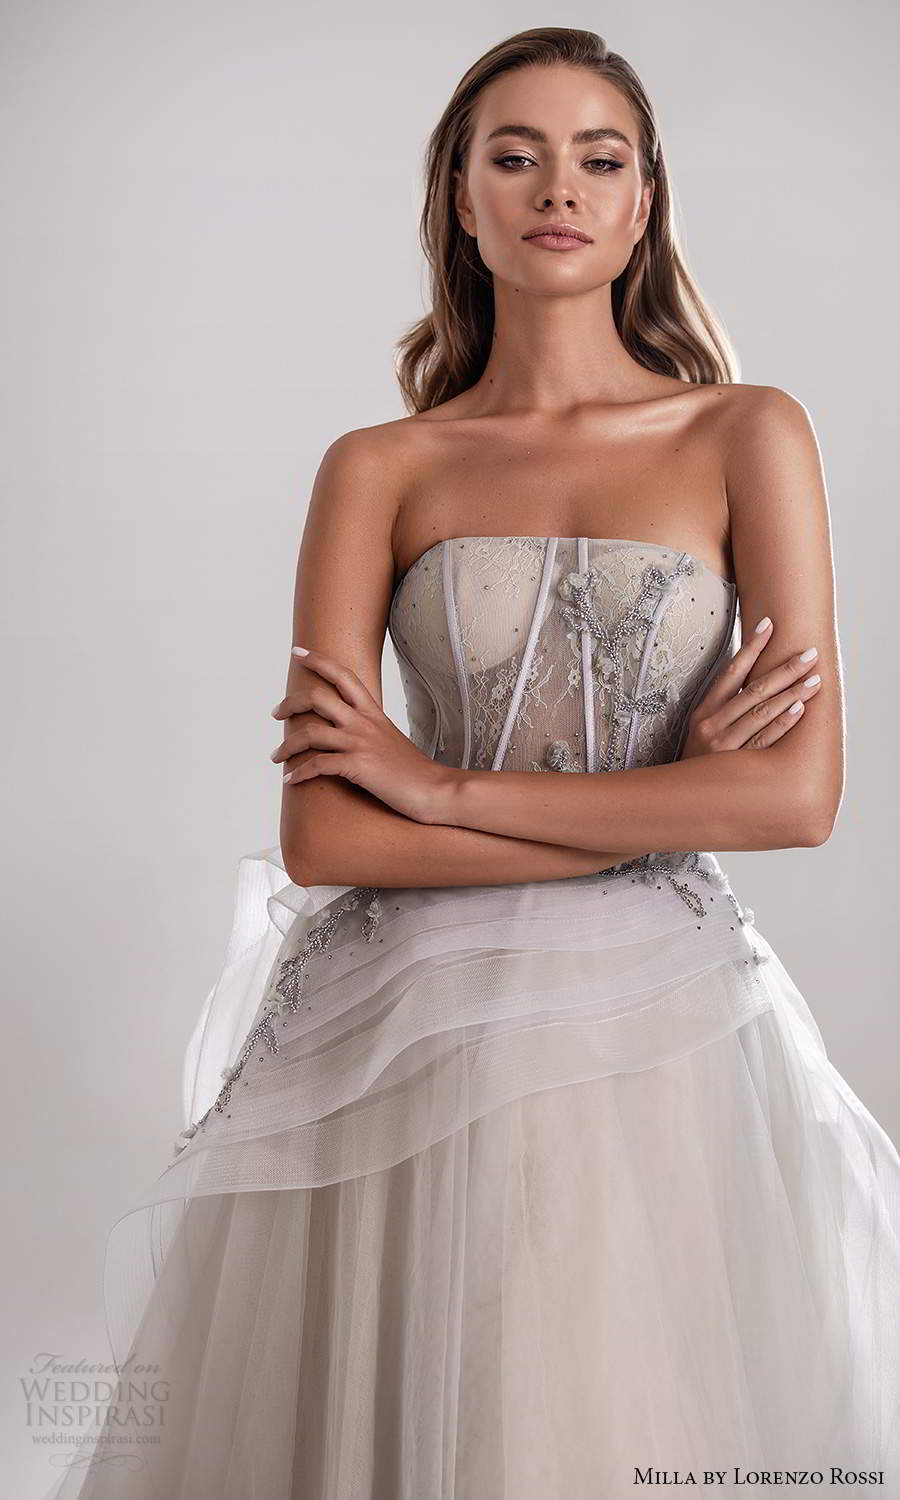 milla by lorenzo rossi 2020 rtw strapless straight across sheer corset bodice a line ball gown wedding dress grey color (18) mv